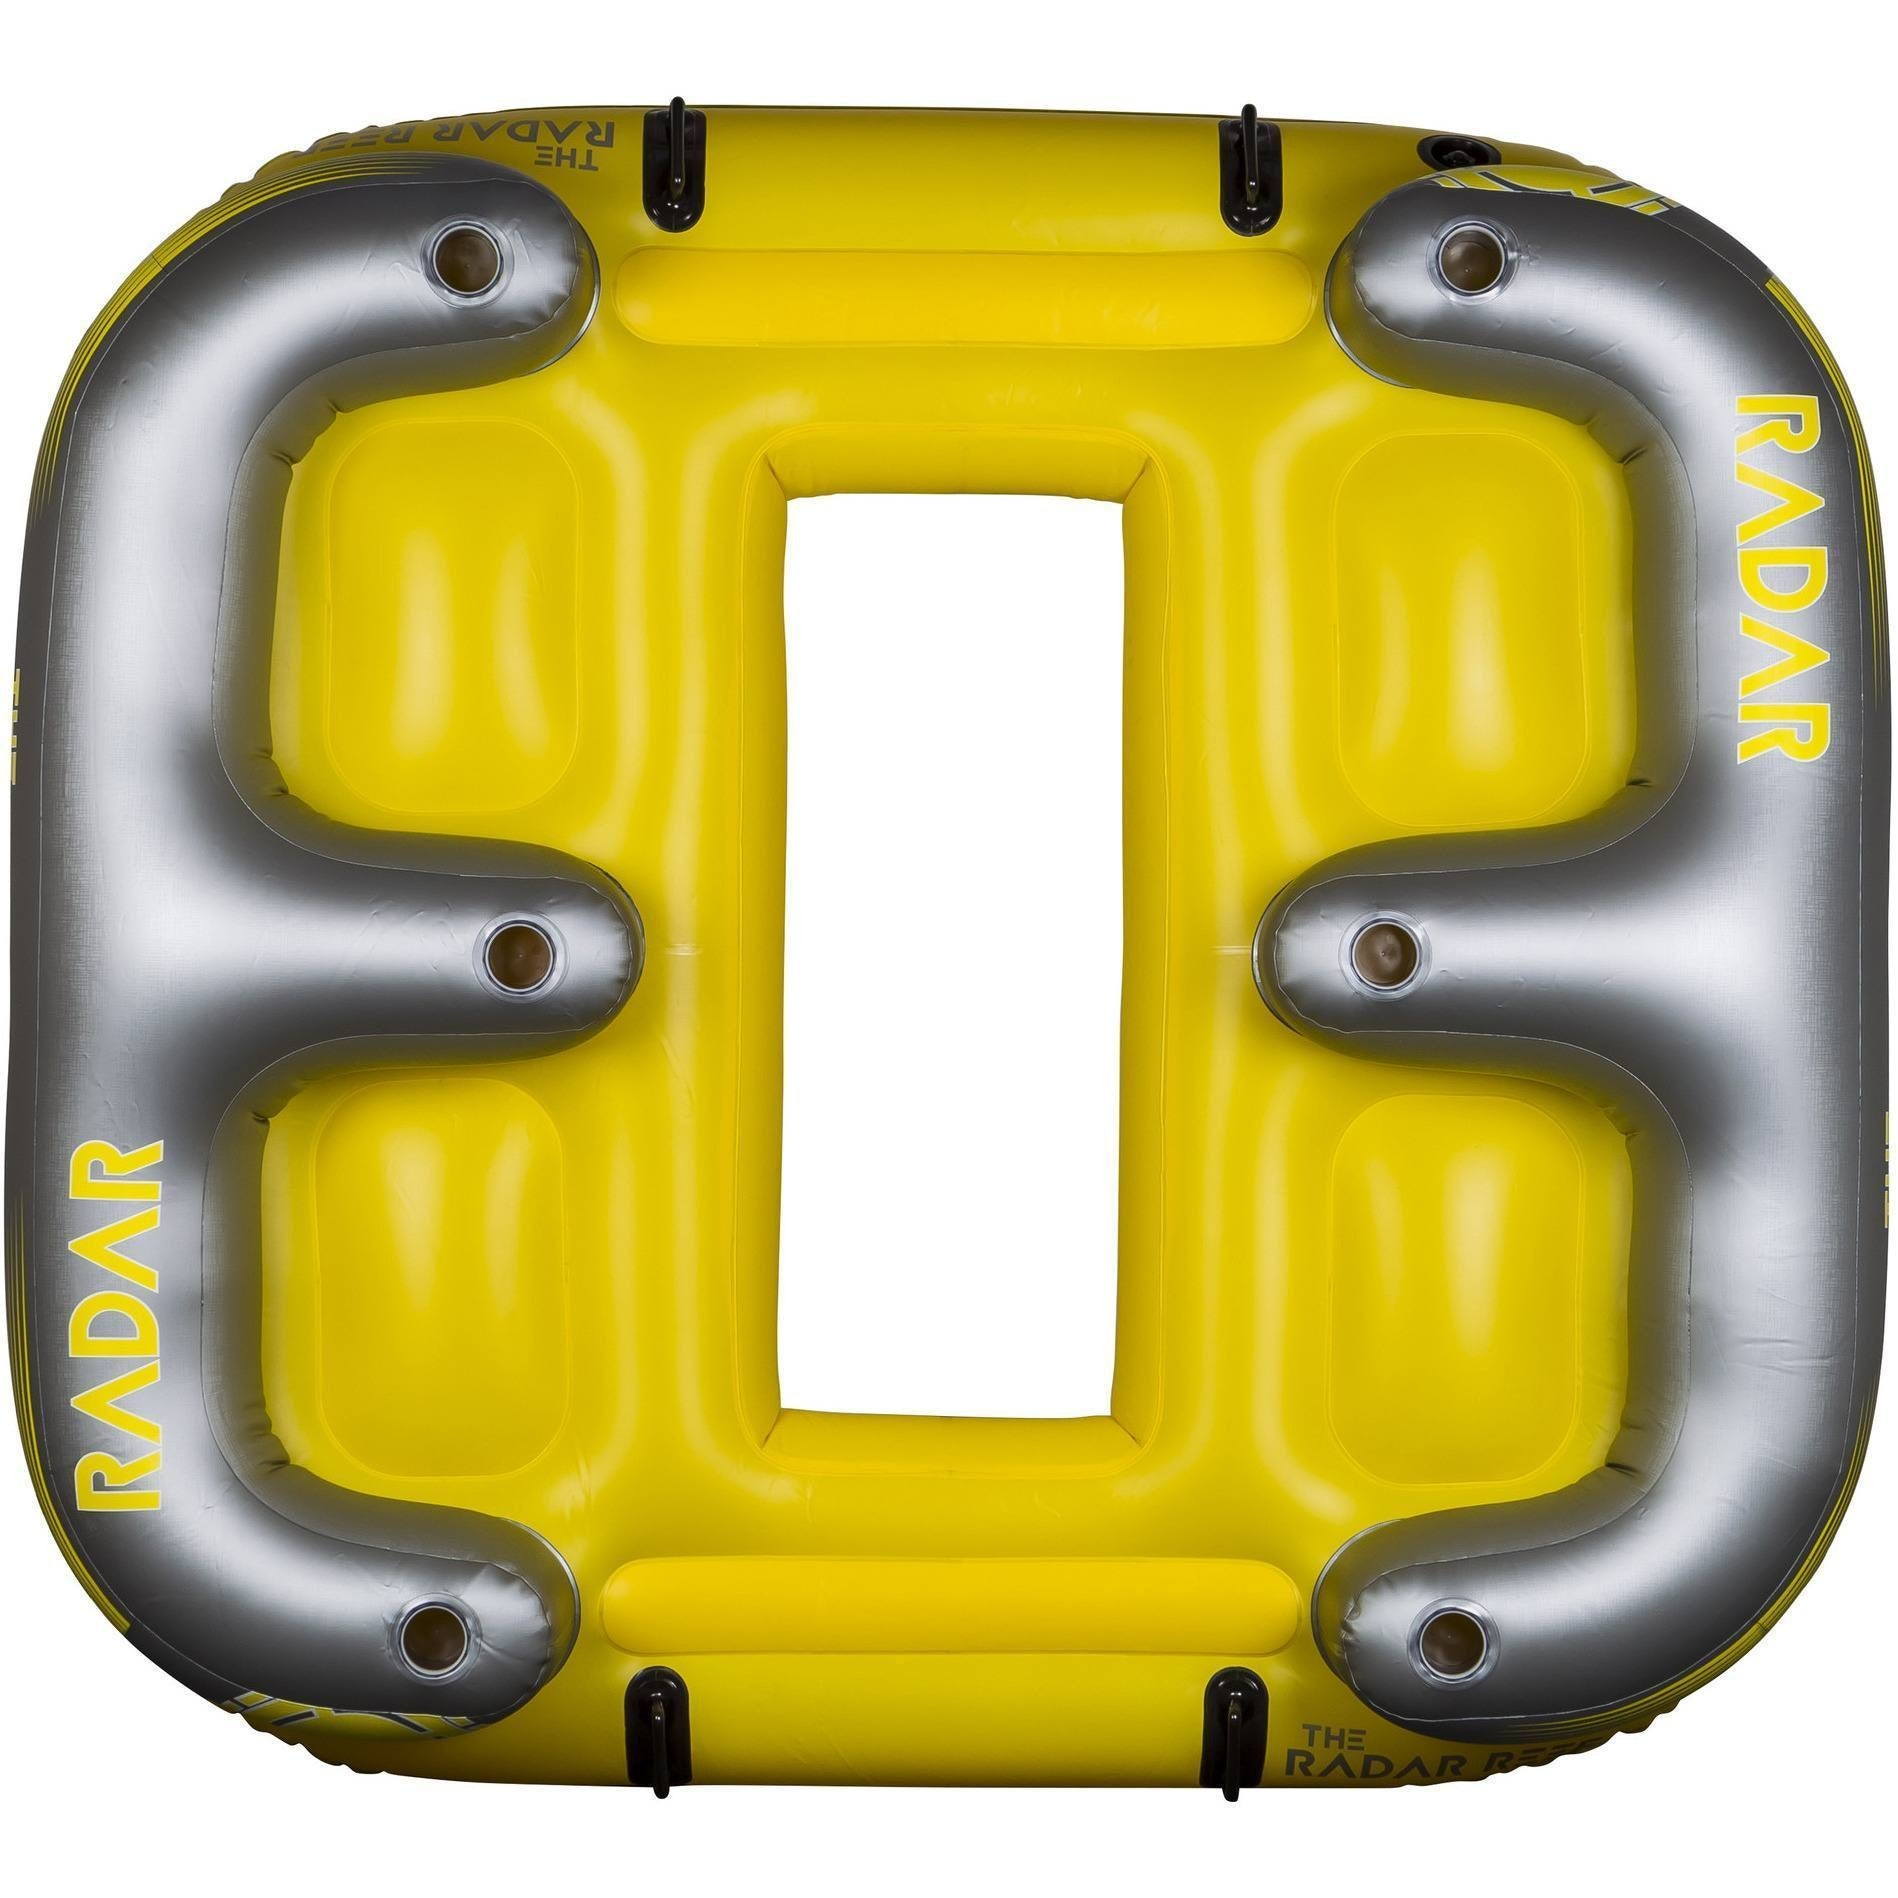 Radar Reef 4 Person Inflatable Lounge - 88 Gear